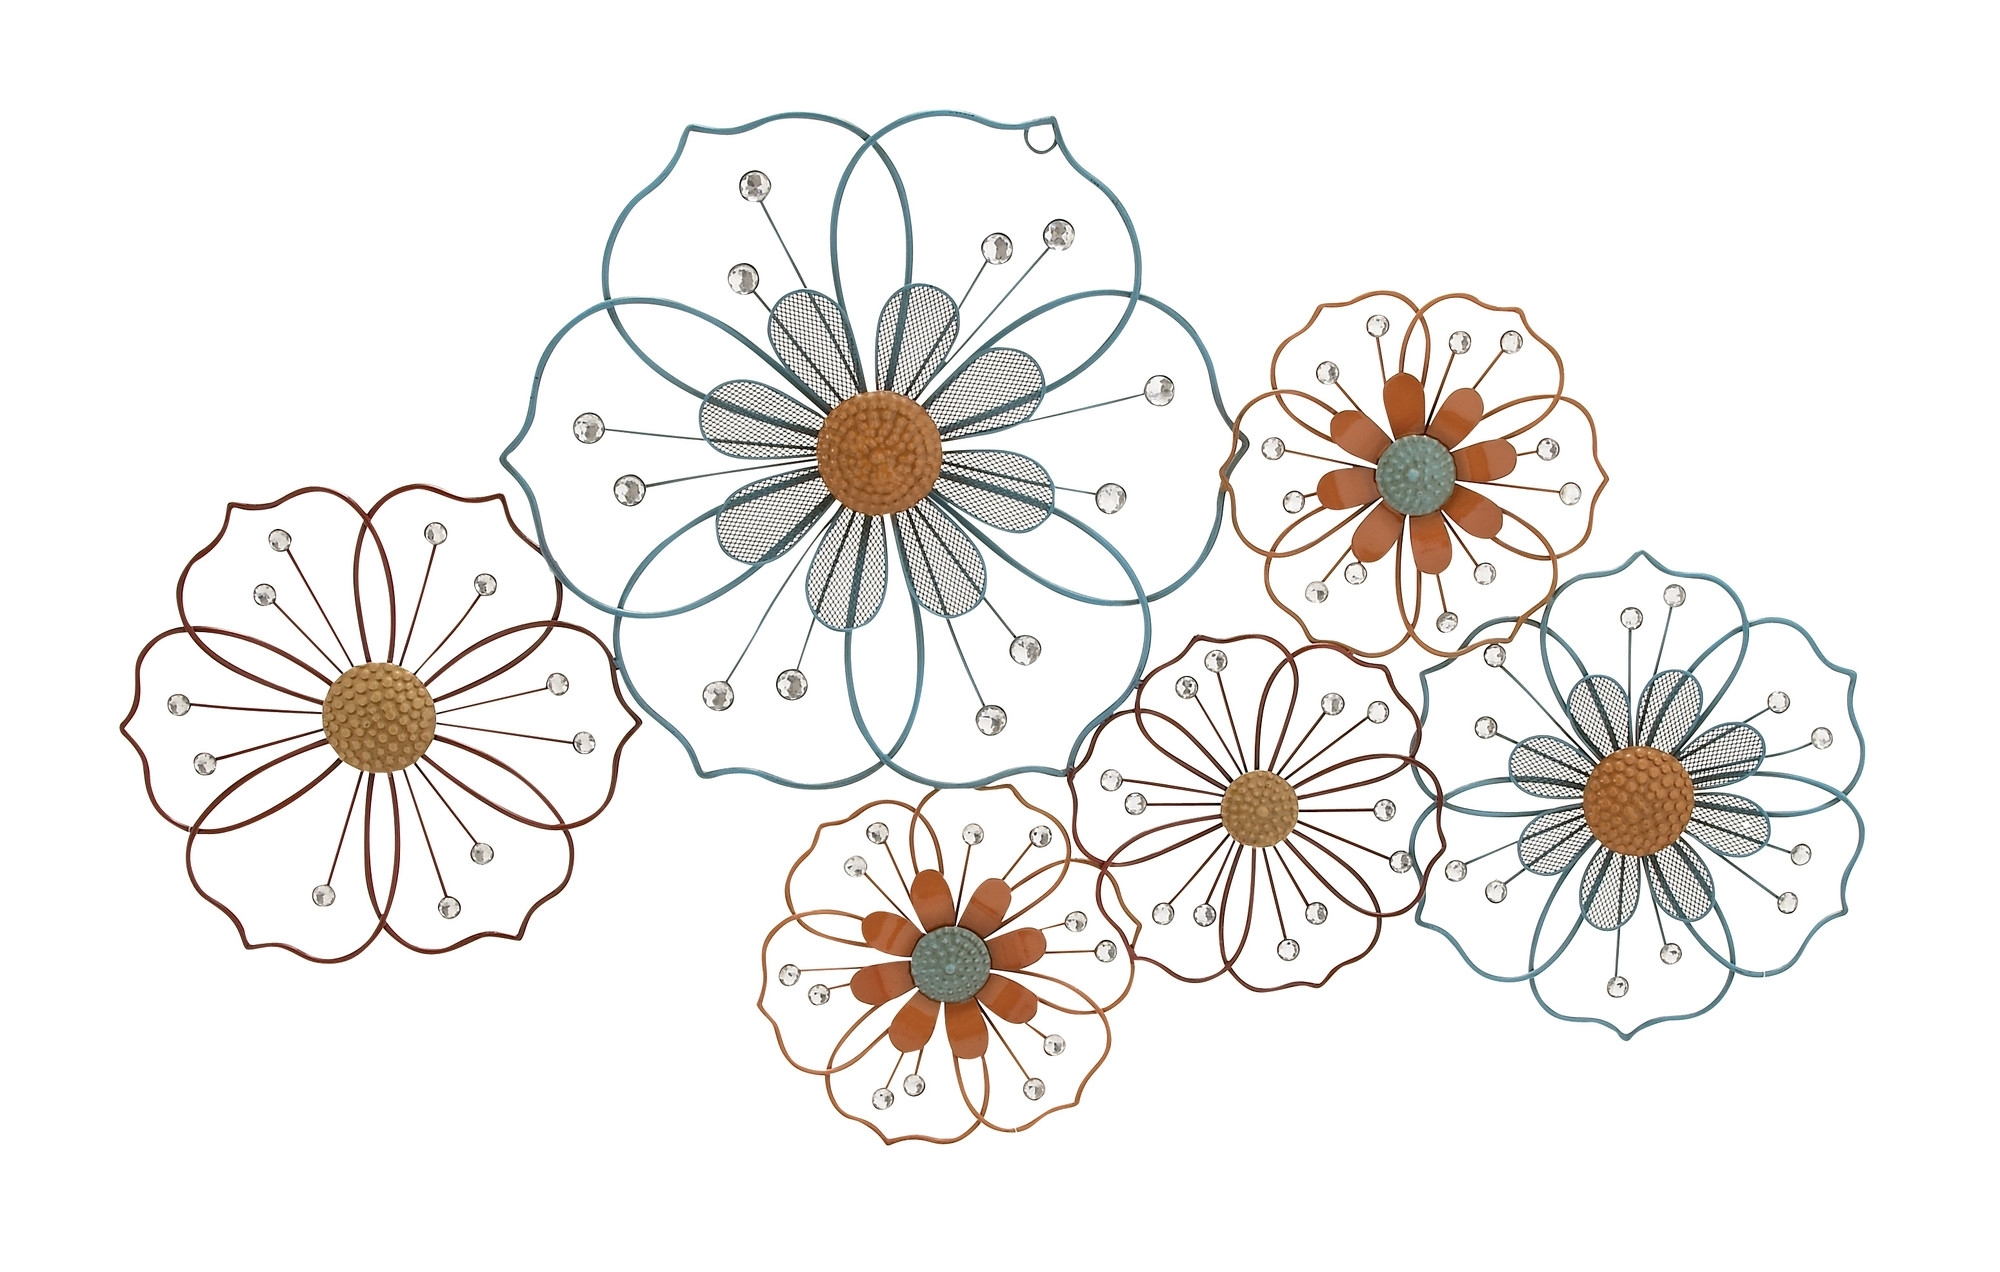 Large Flower Silhouettes – Floral Metal Wall Art With Regard To Current Metal Flowers Wall Art (Gallery 7 of 20)